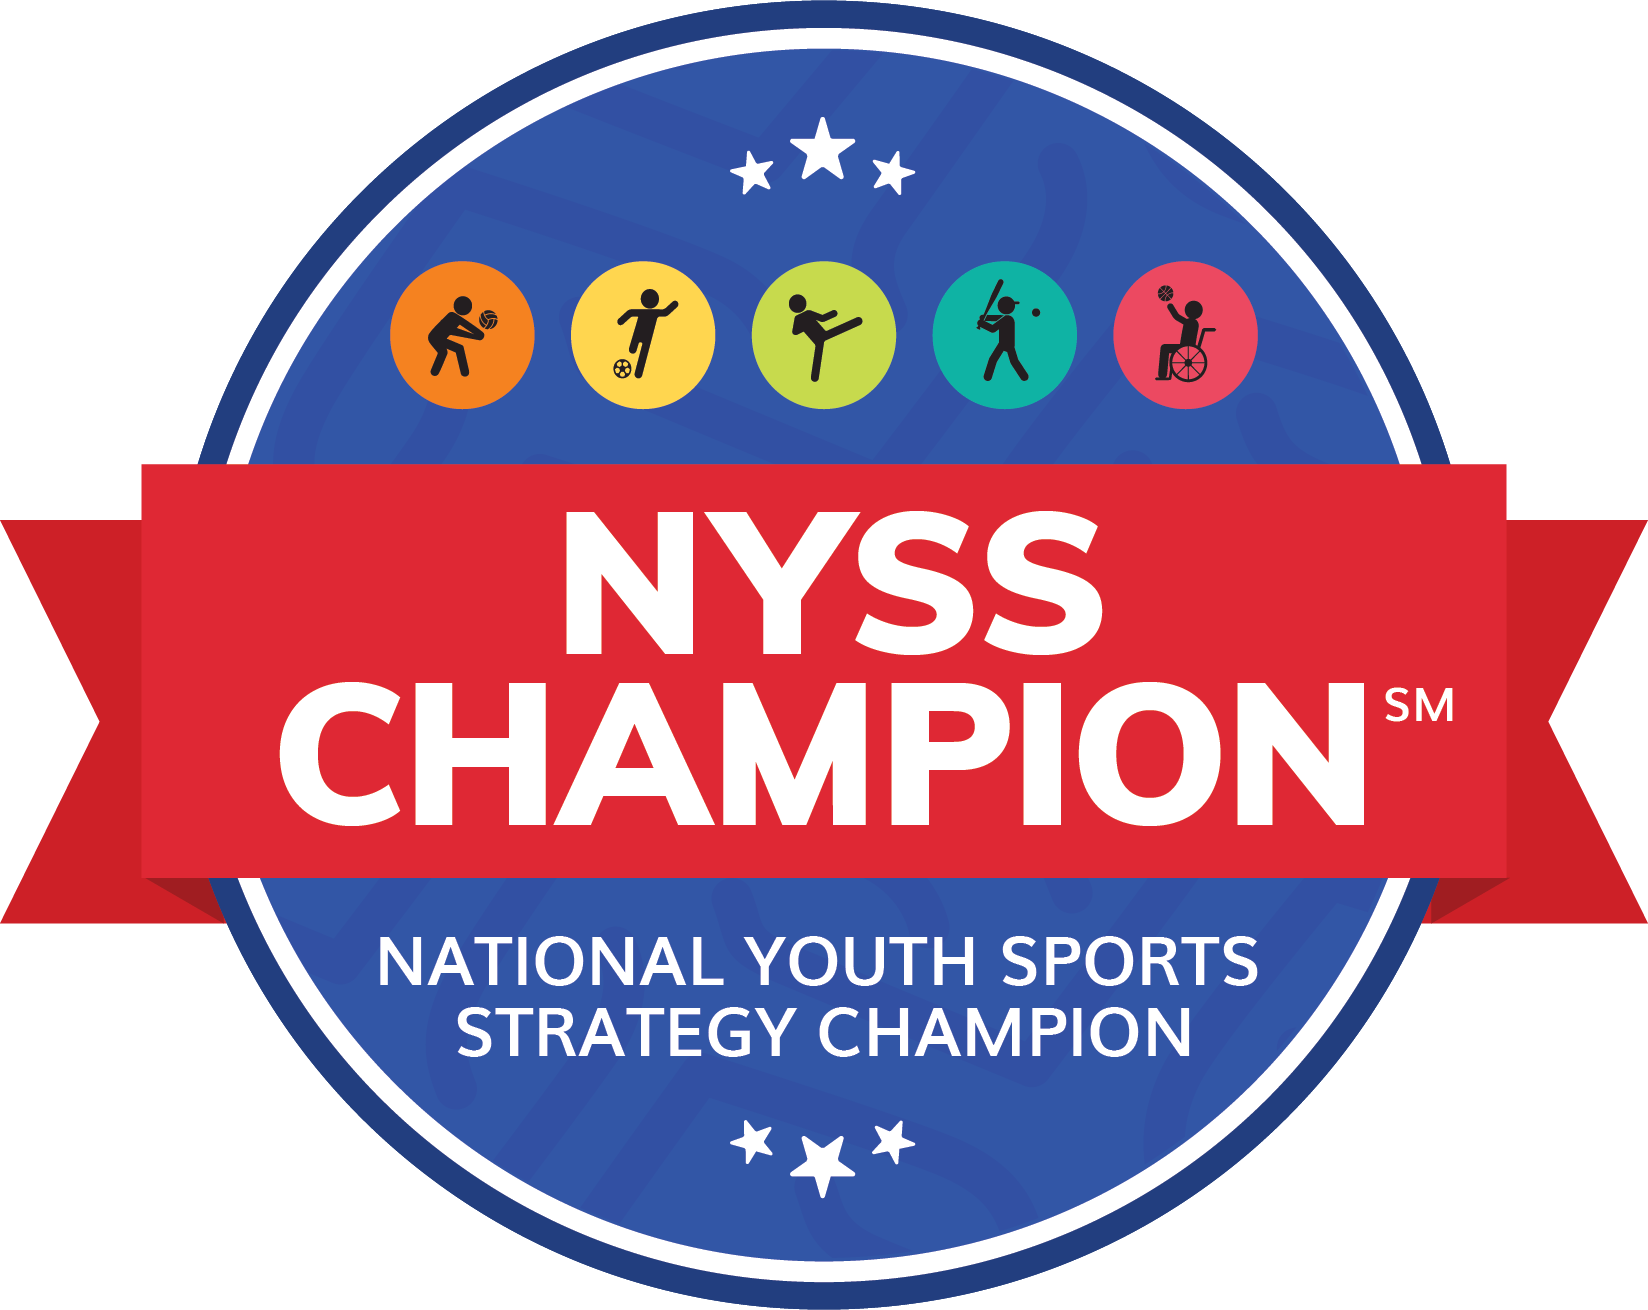 Official National Youth Sport Strategy (NYSS) Champion web badge